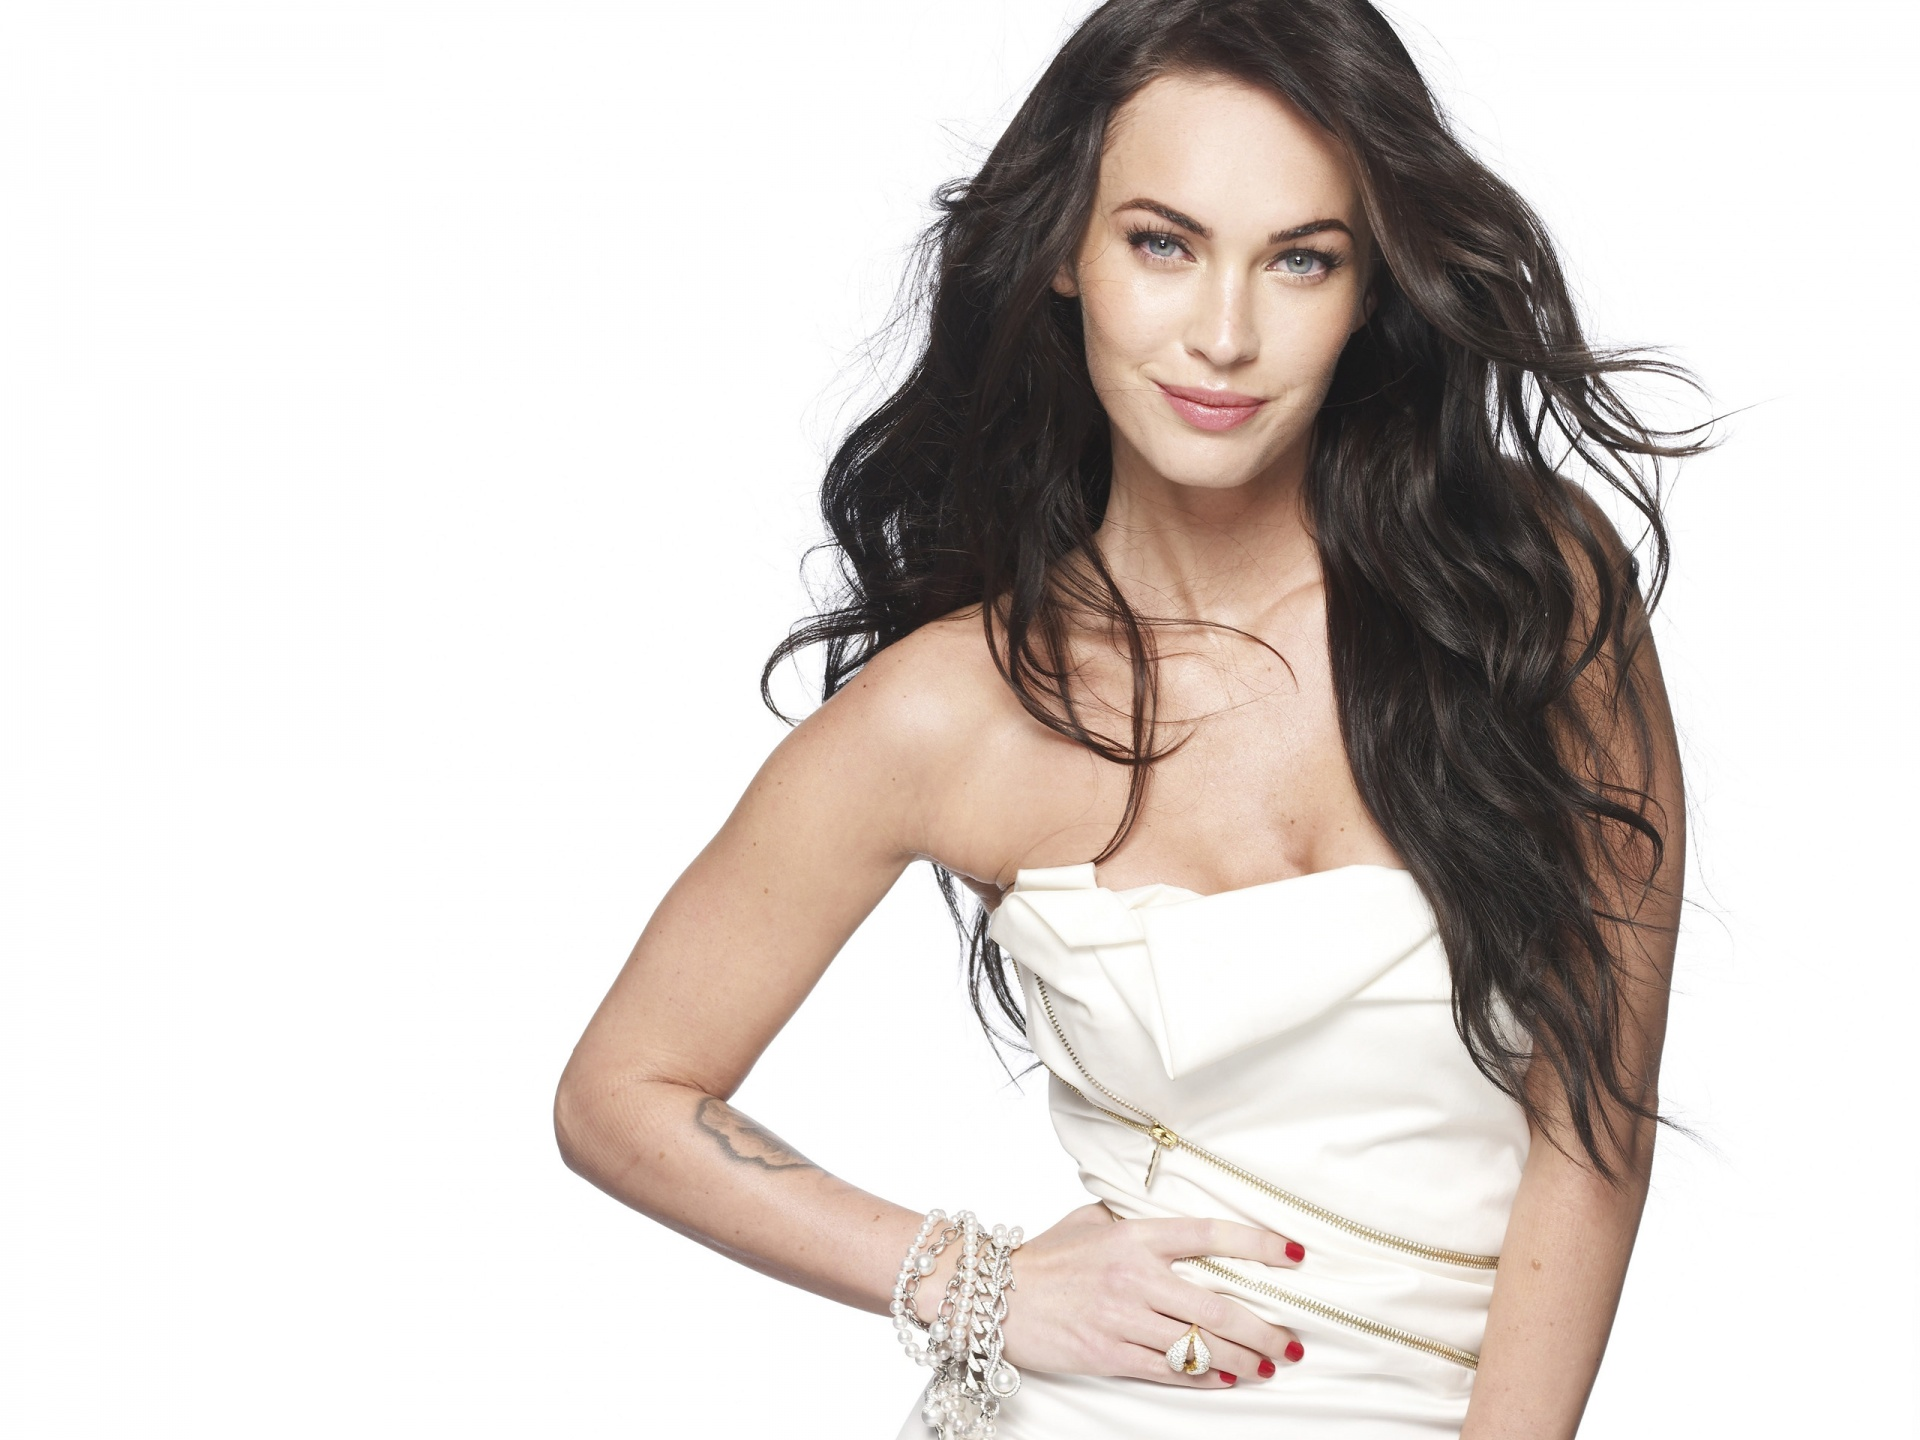 megan fox wallpapers hd A19